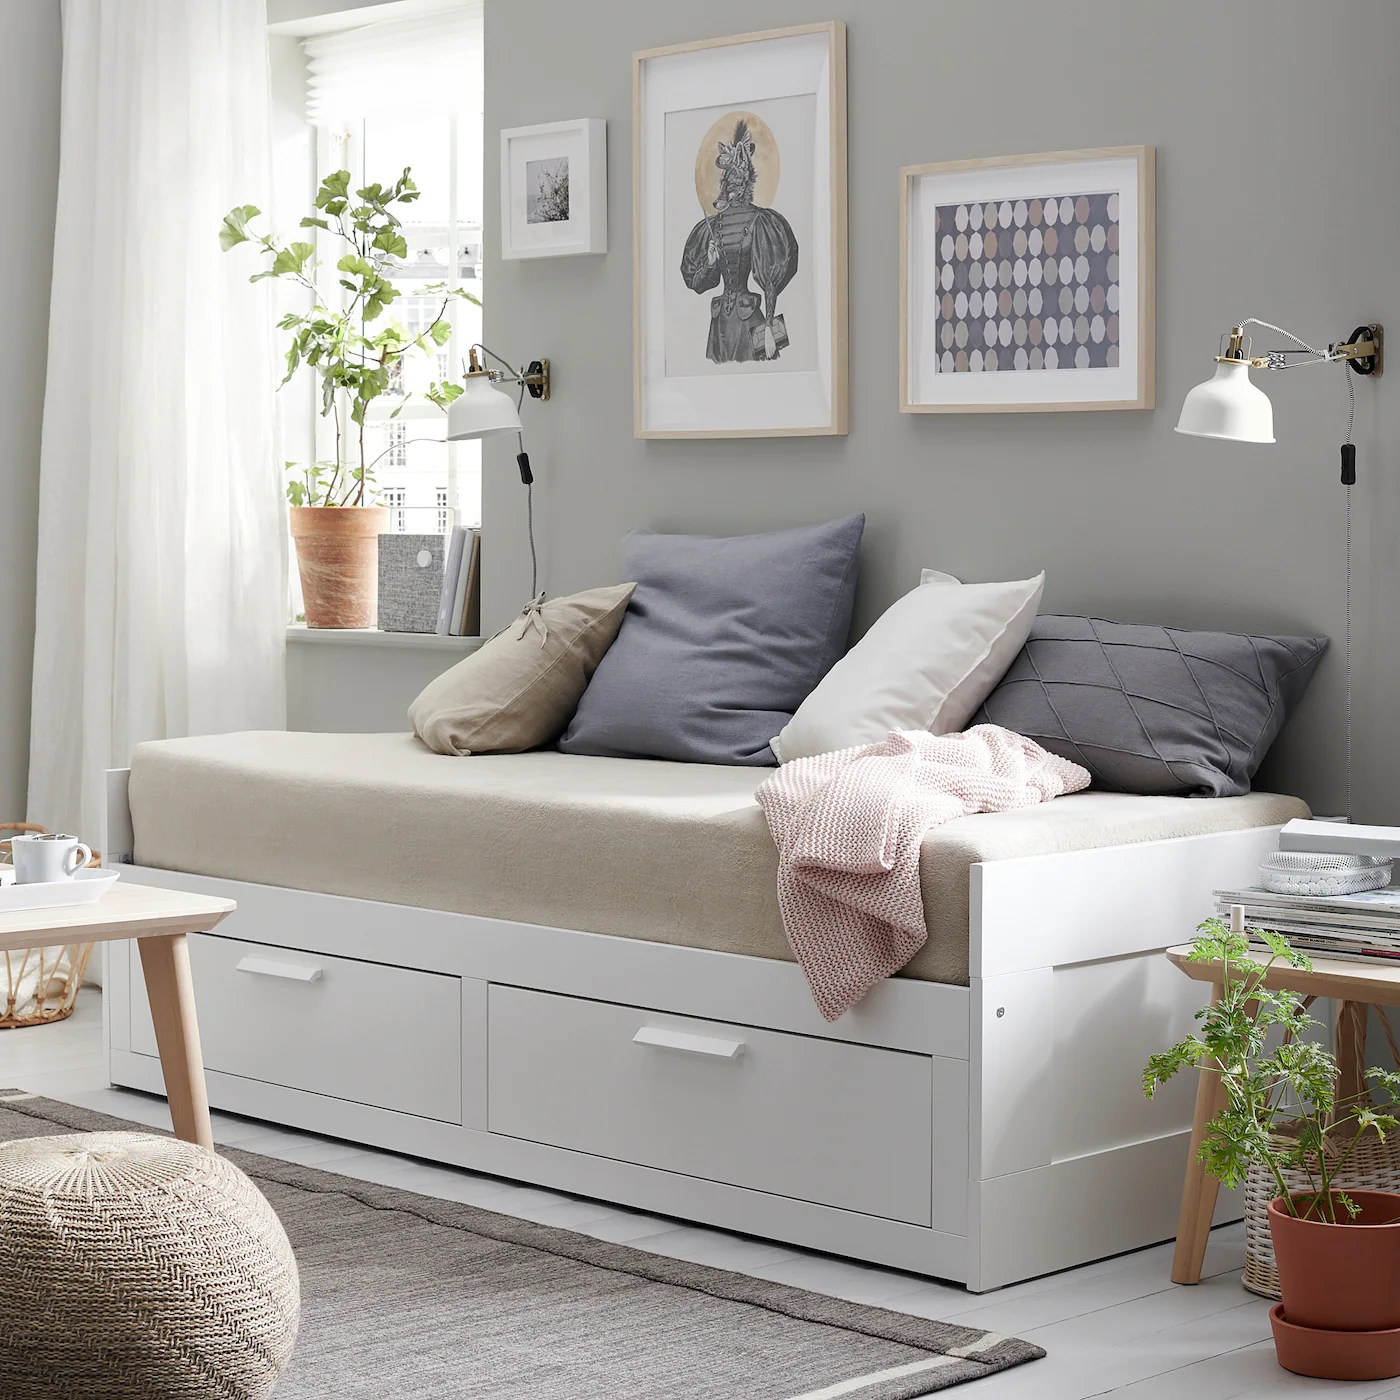 Brimnes Daybed With 2 Drawers 2 Mattresses White - Ikea Daybed